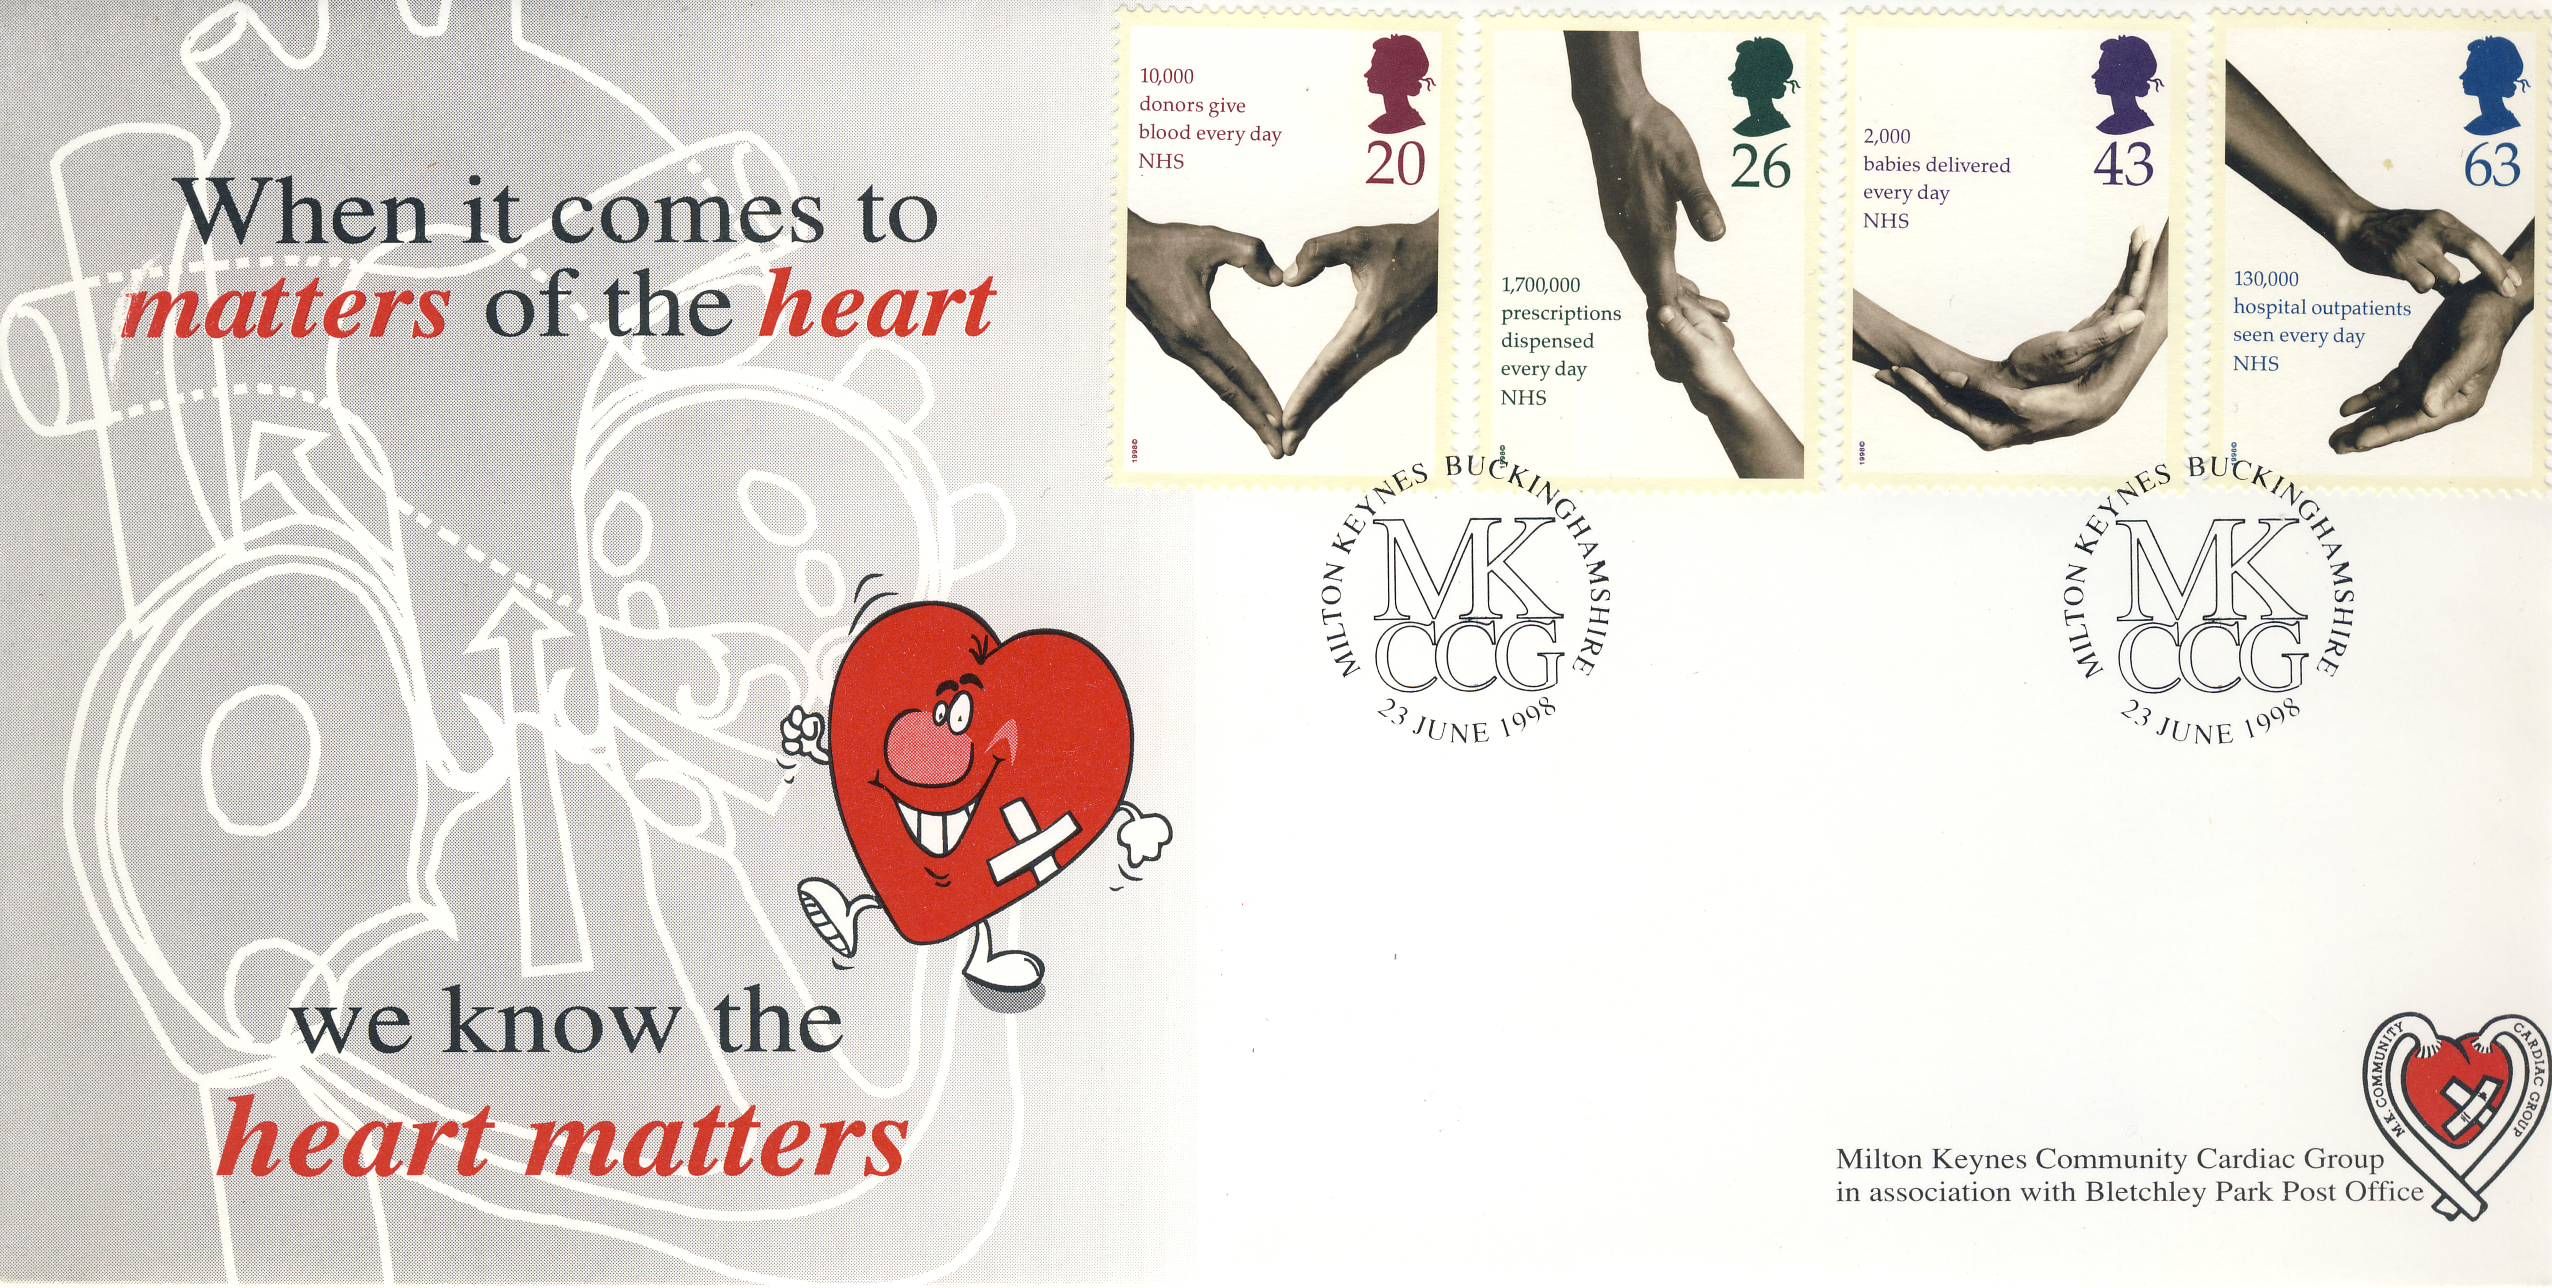 23rd June 1998 NHS 50 years Heart Matters Milton Keynes BLETCHLEY PARK Post Office Limited Edition cover FDC postmark MKCCG This is a limited edition stamp cover numbered 25 of 200 CARDIAC GROUP MILTON KEYNES COMMUNITY .  Very good condition.